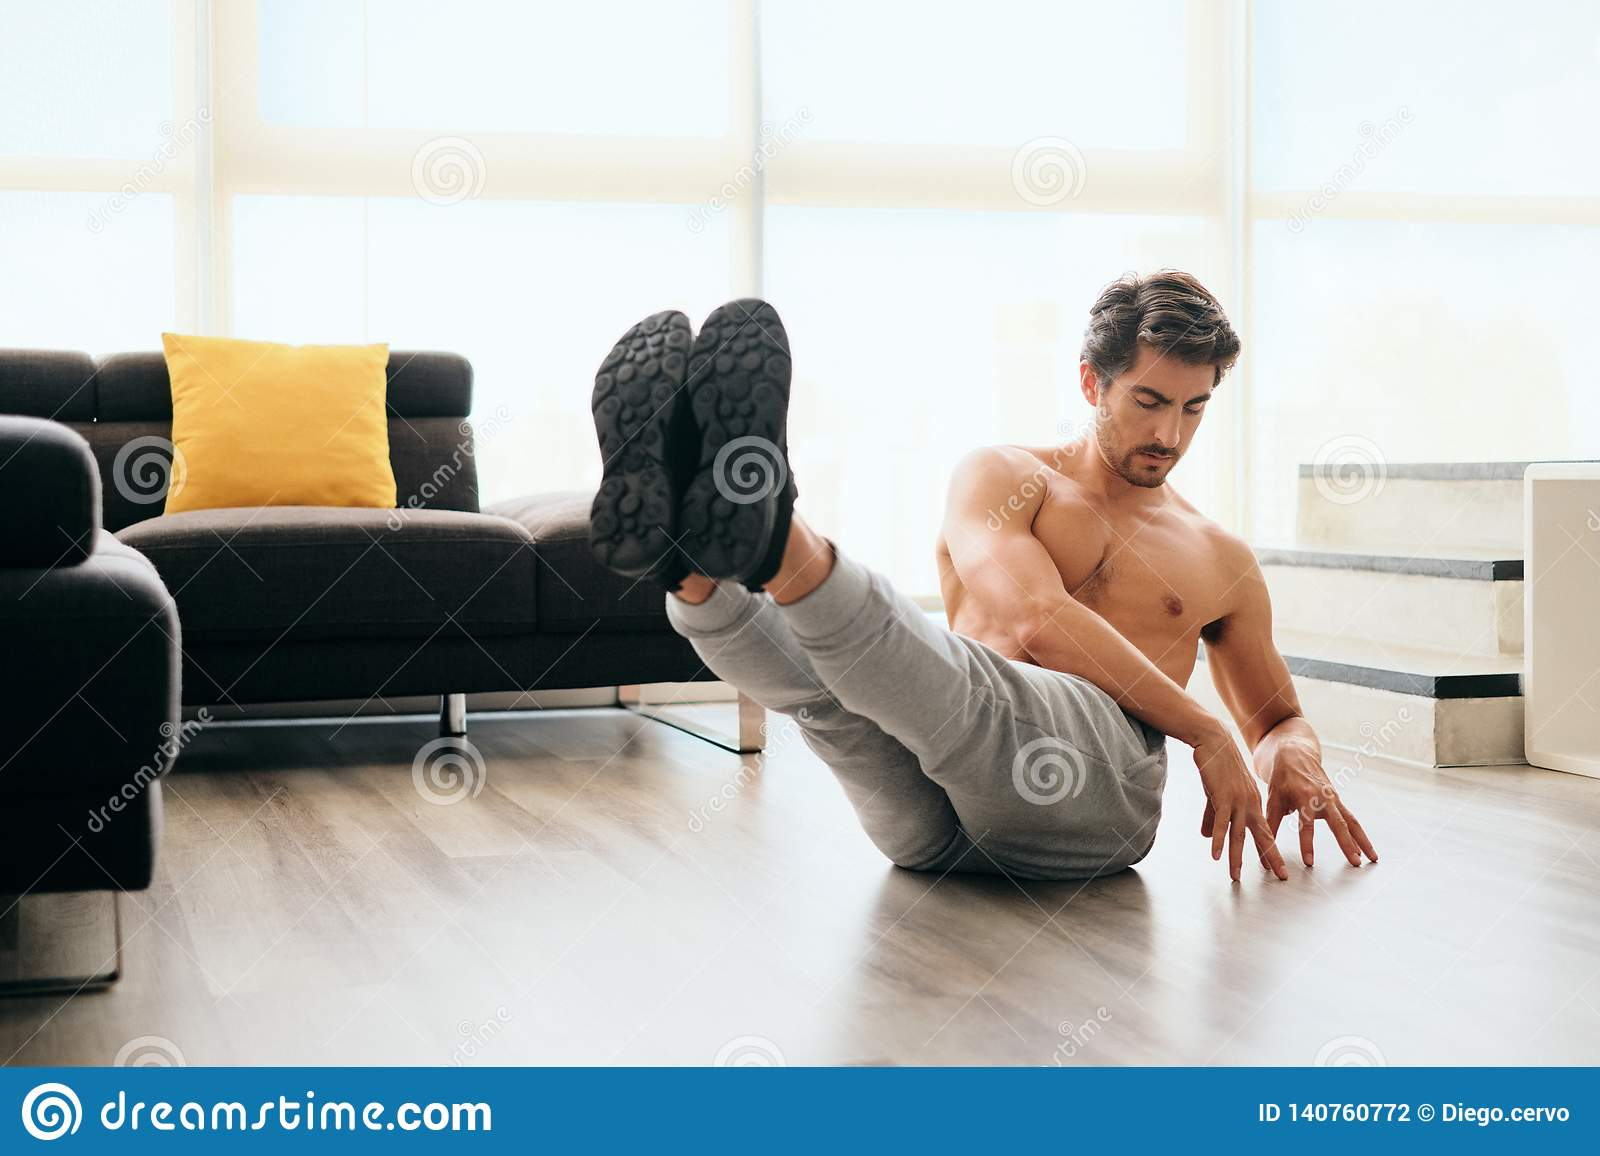 Adult Man Training ABS Muscles At Home Doing Russina Twist Exercise